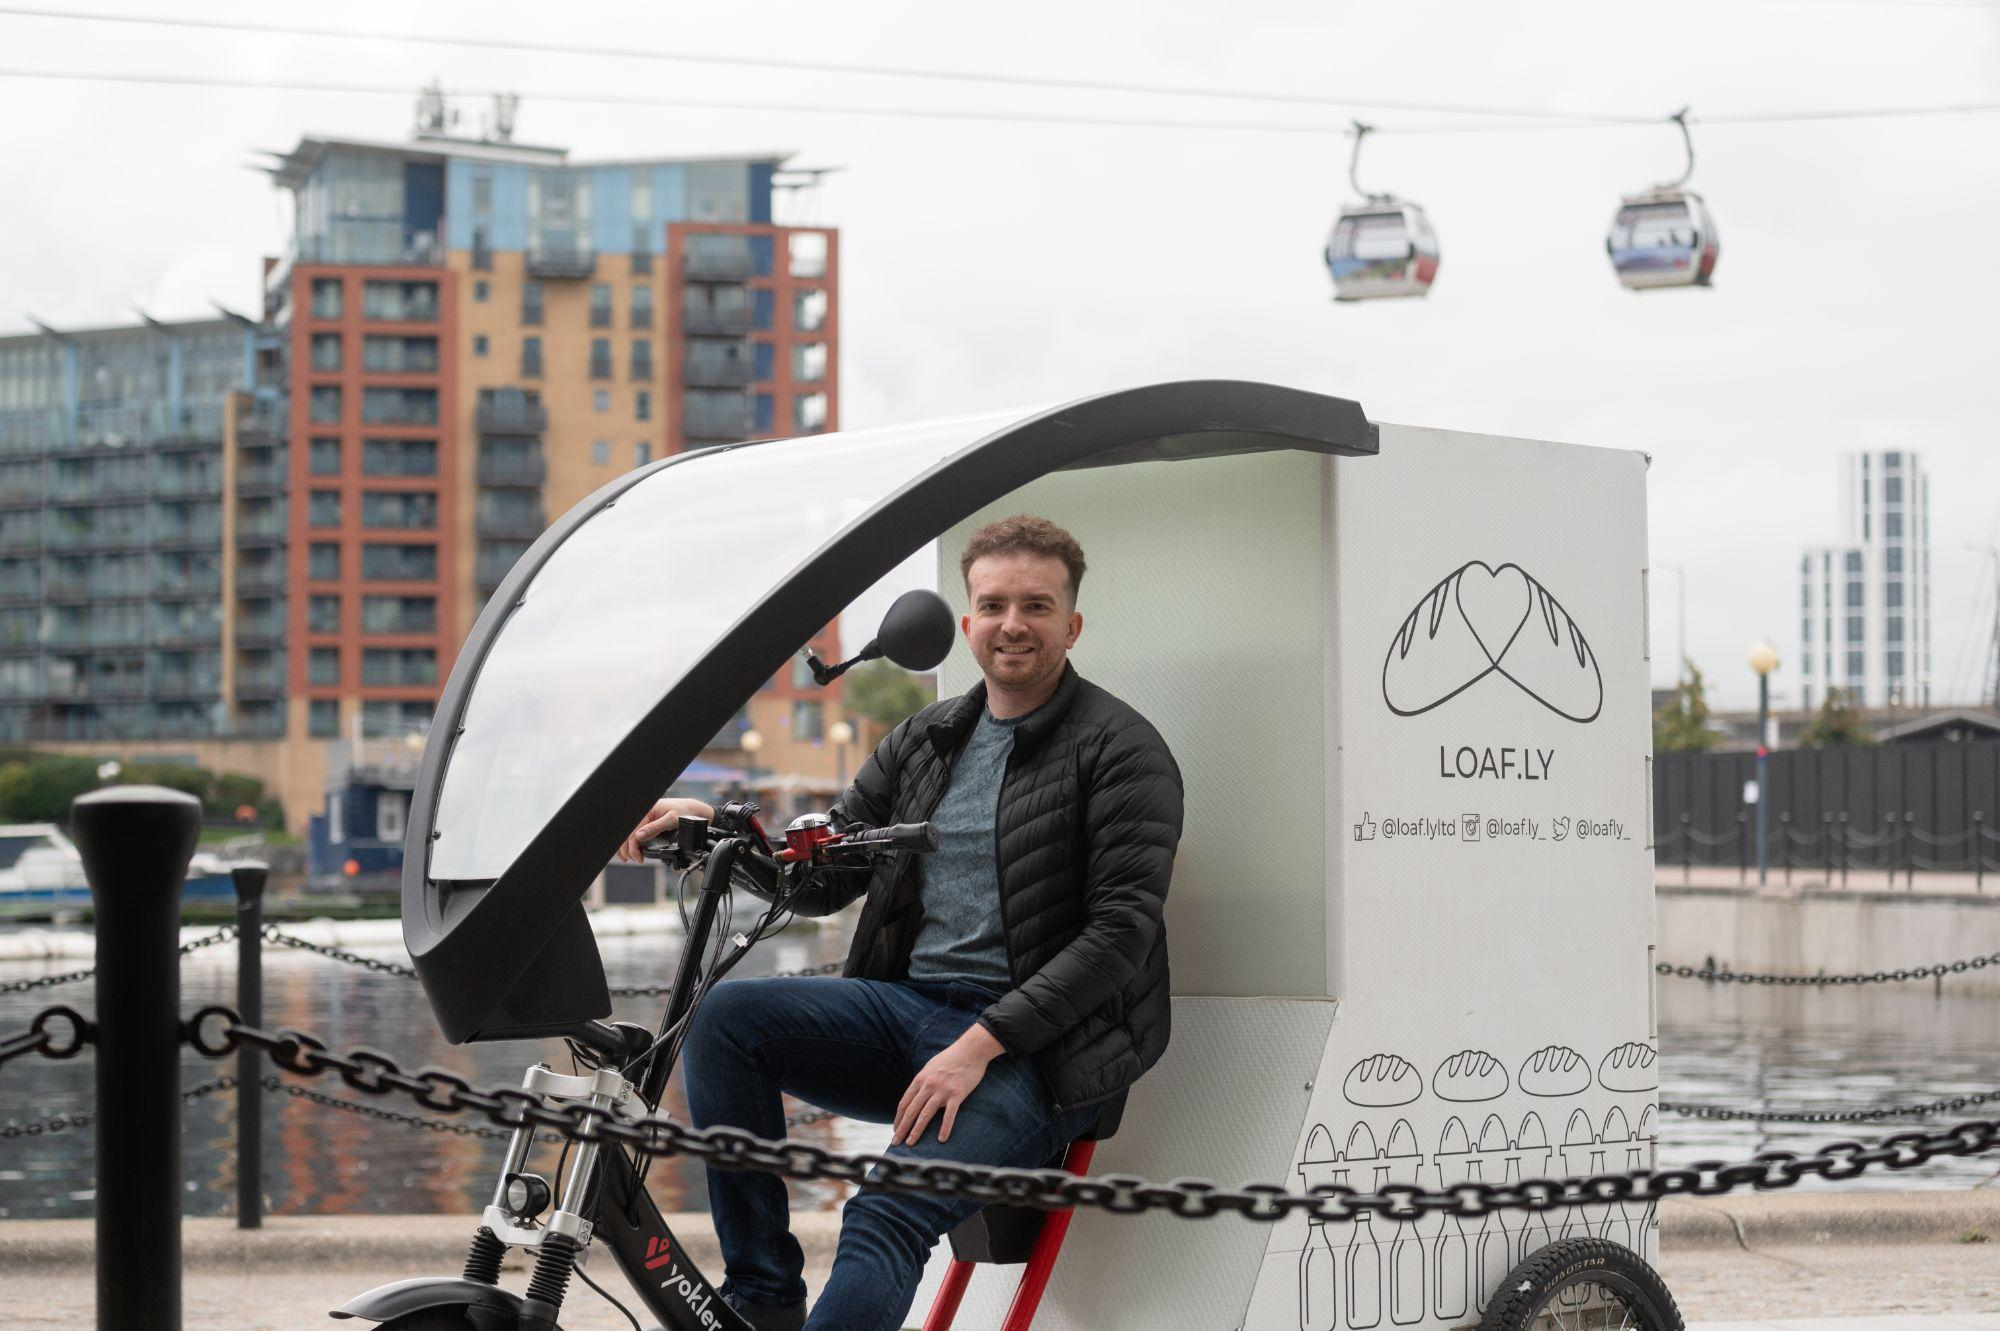 Ben sitting on the loafly delivery bike